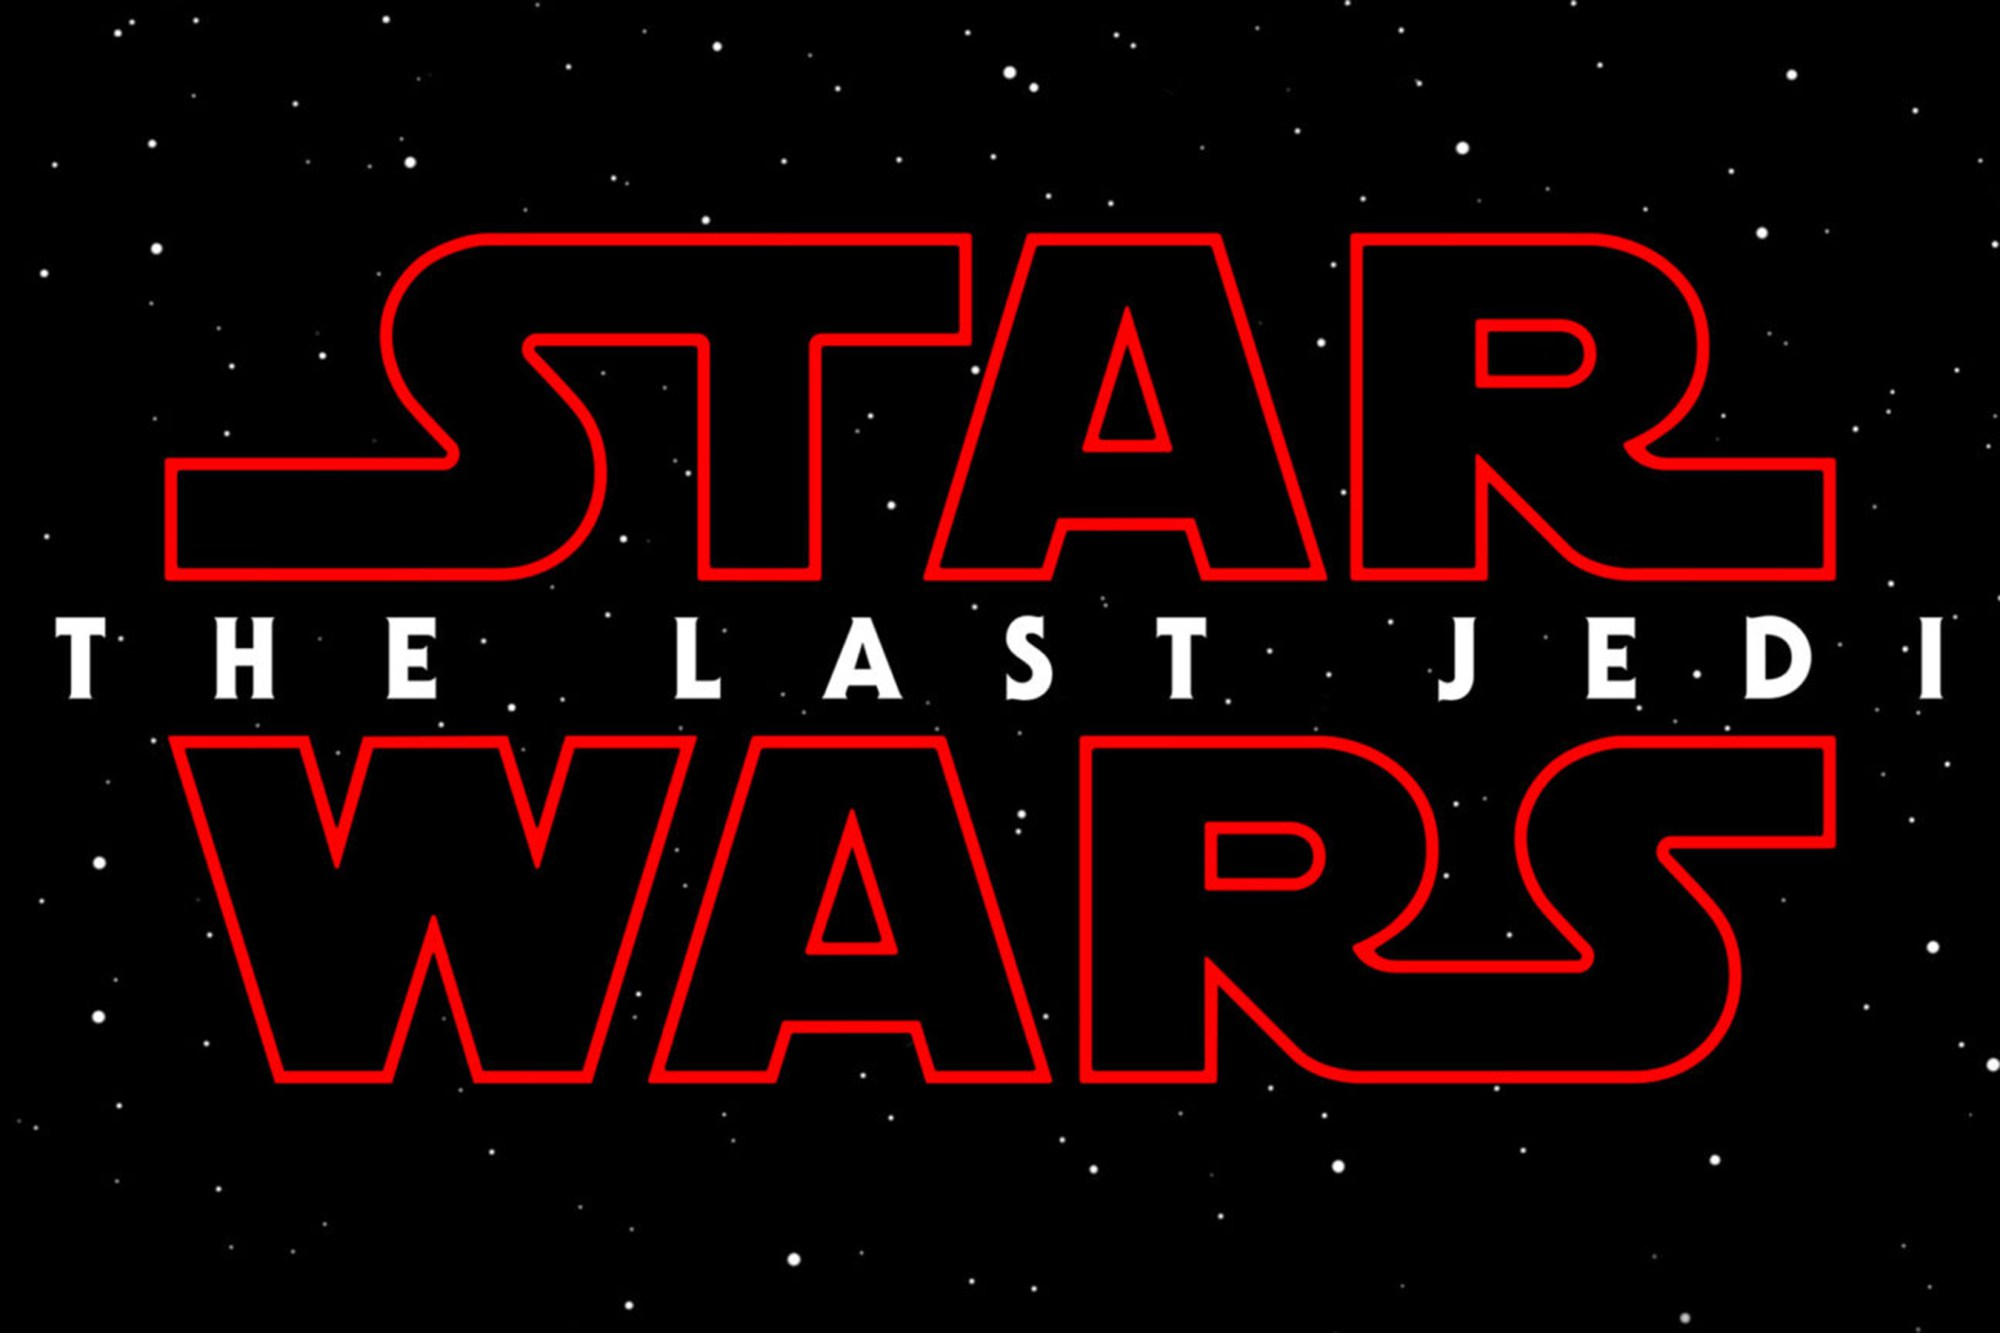 Star Wars: The Last Jedi trailer has arrived!